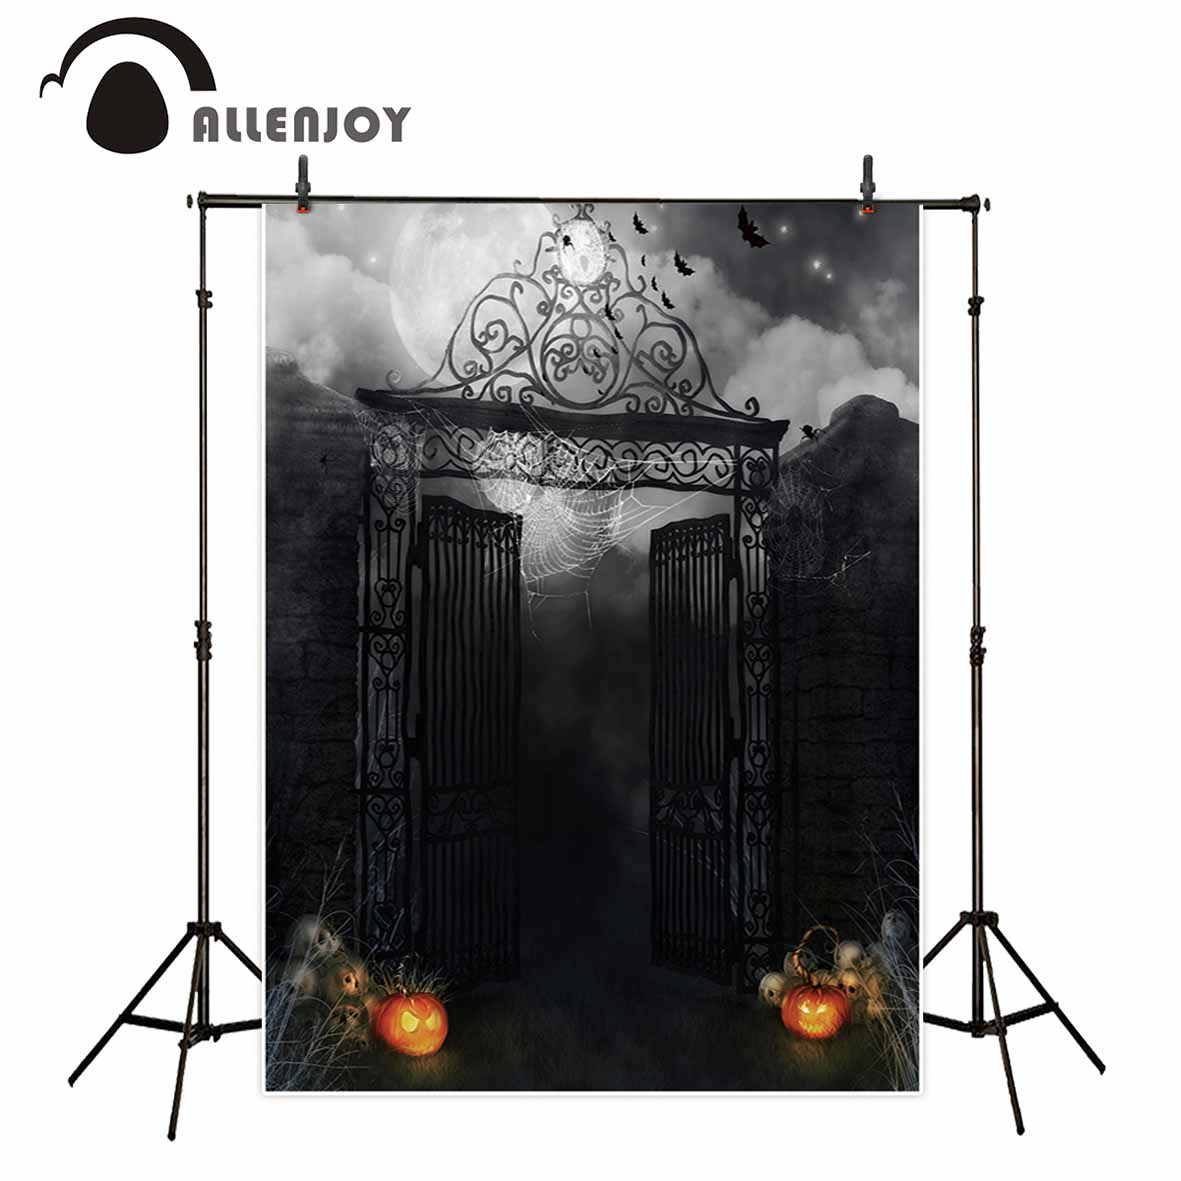 Allenjoy Halloween dark night party photography backdrops smokey black mist foggy iron gate pumpkin spooky photo backgrounds